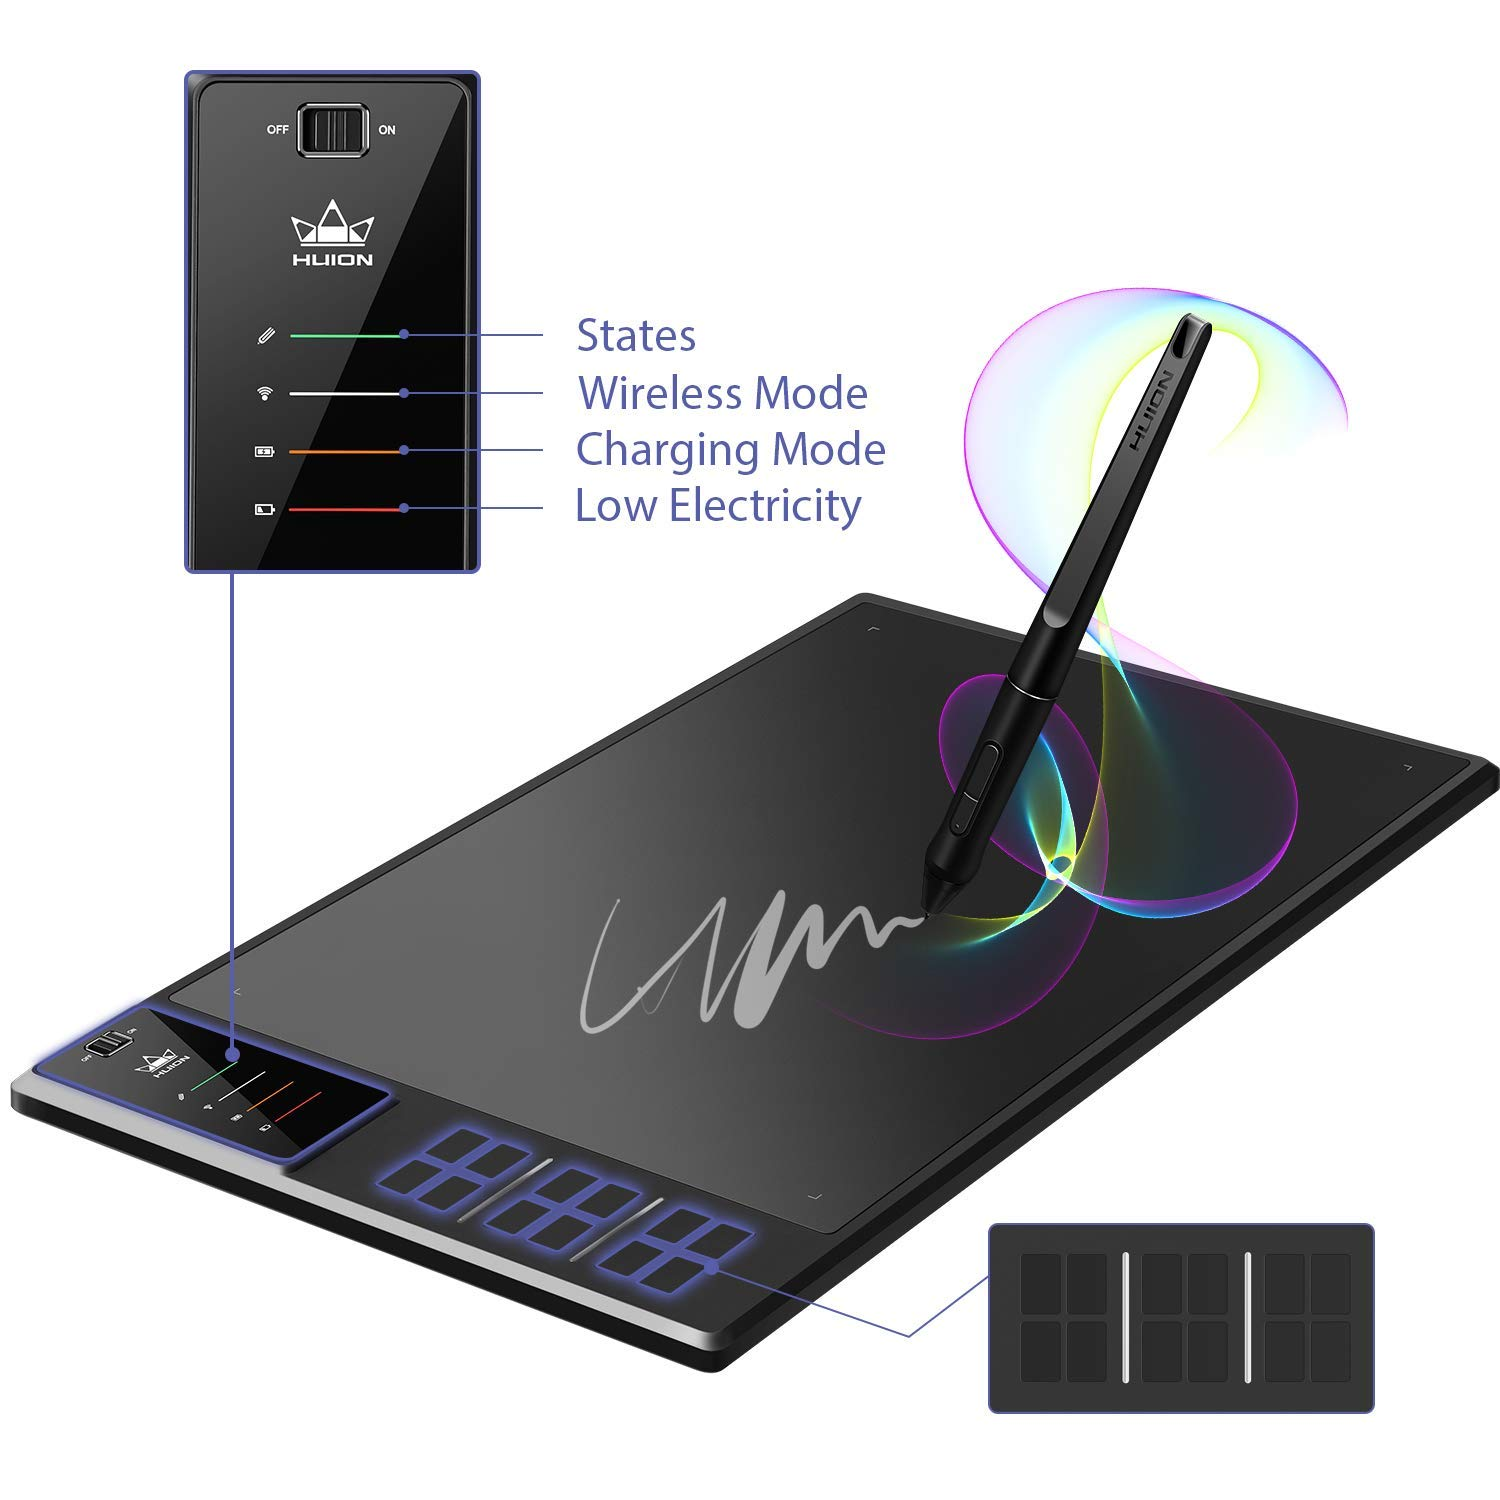 HUION WH1409 V2 Graphic Tablet